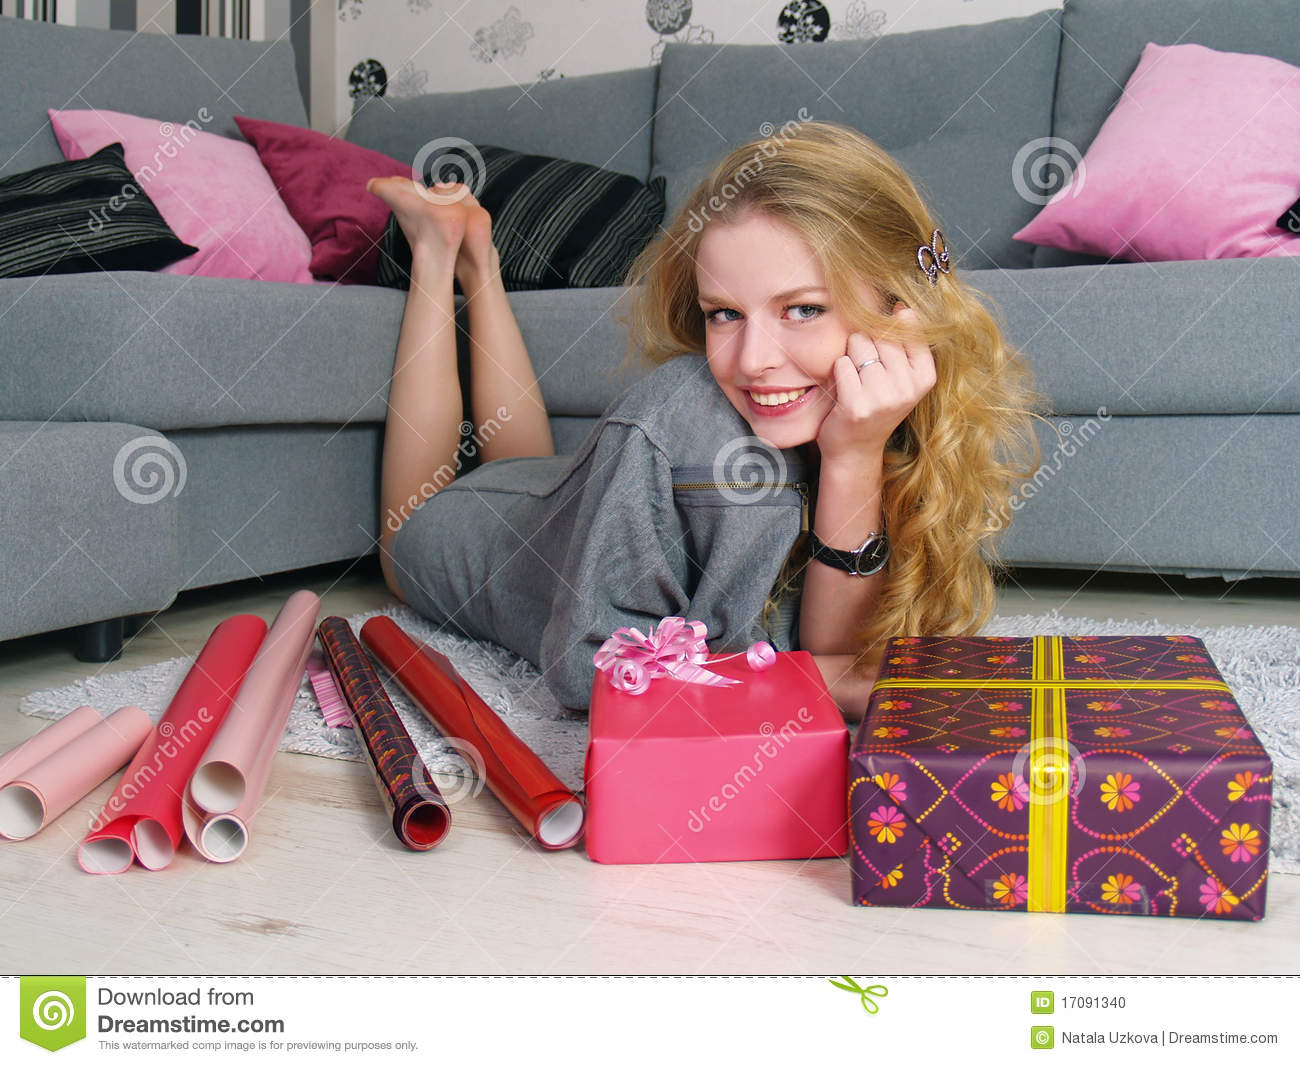 The beautiful girl packs gifts for a holiday